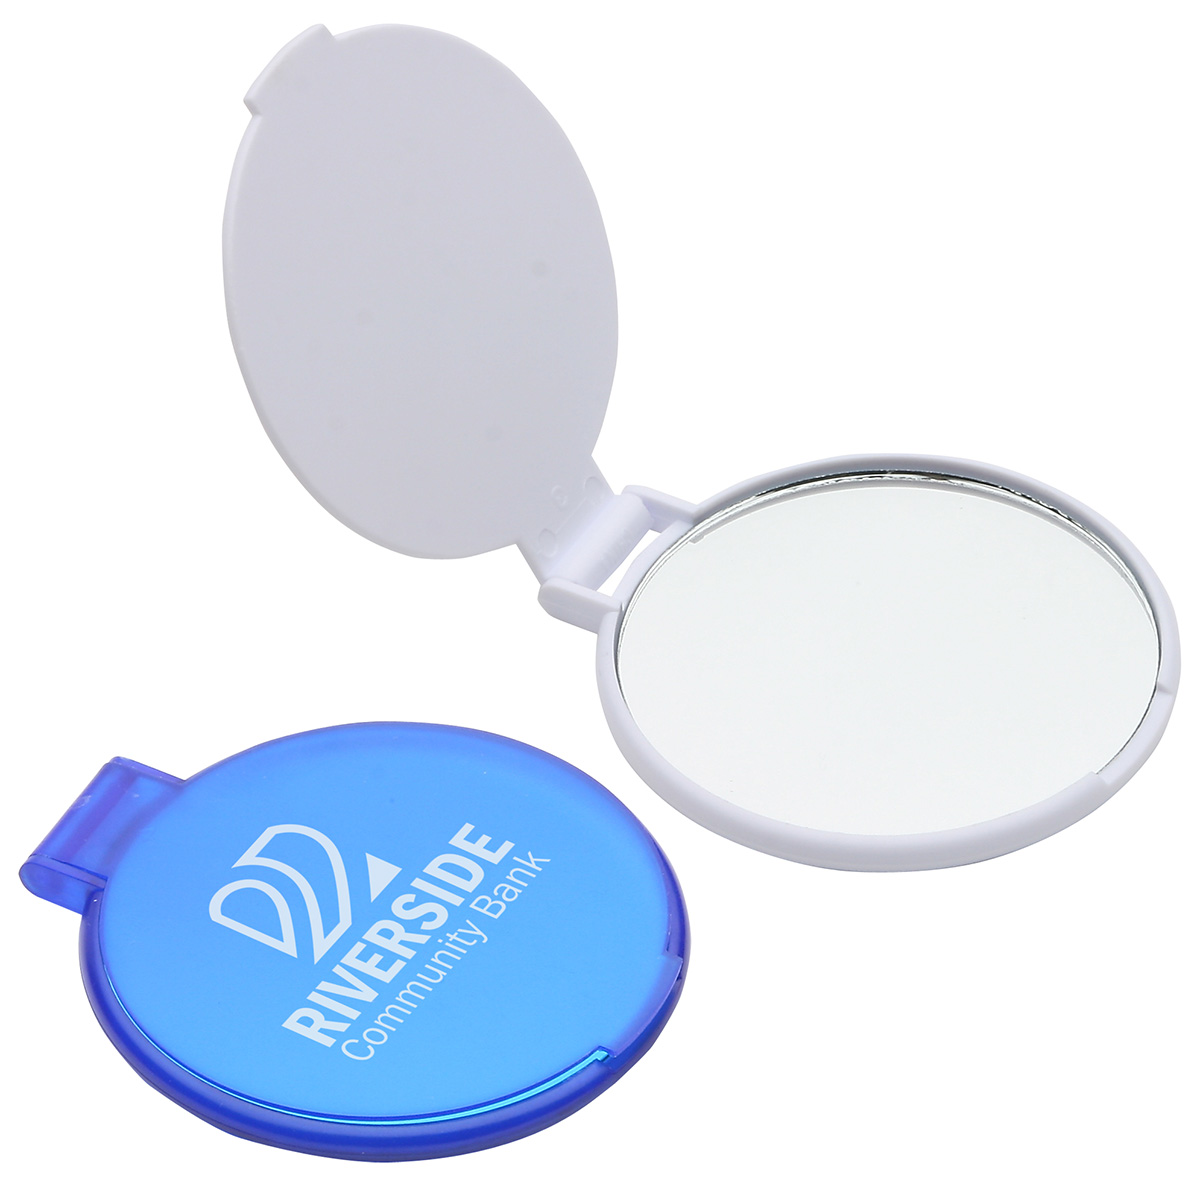 Ultra Thin Pocket Mirror, WPC-PM10 - 1 Colour Imprint